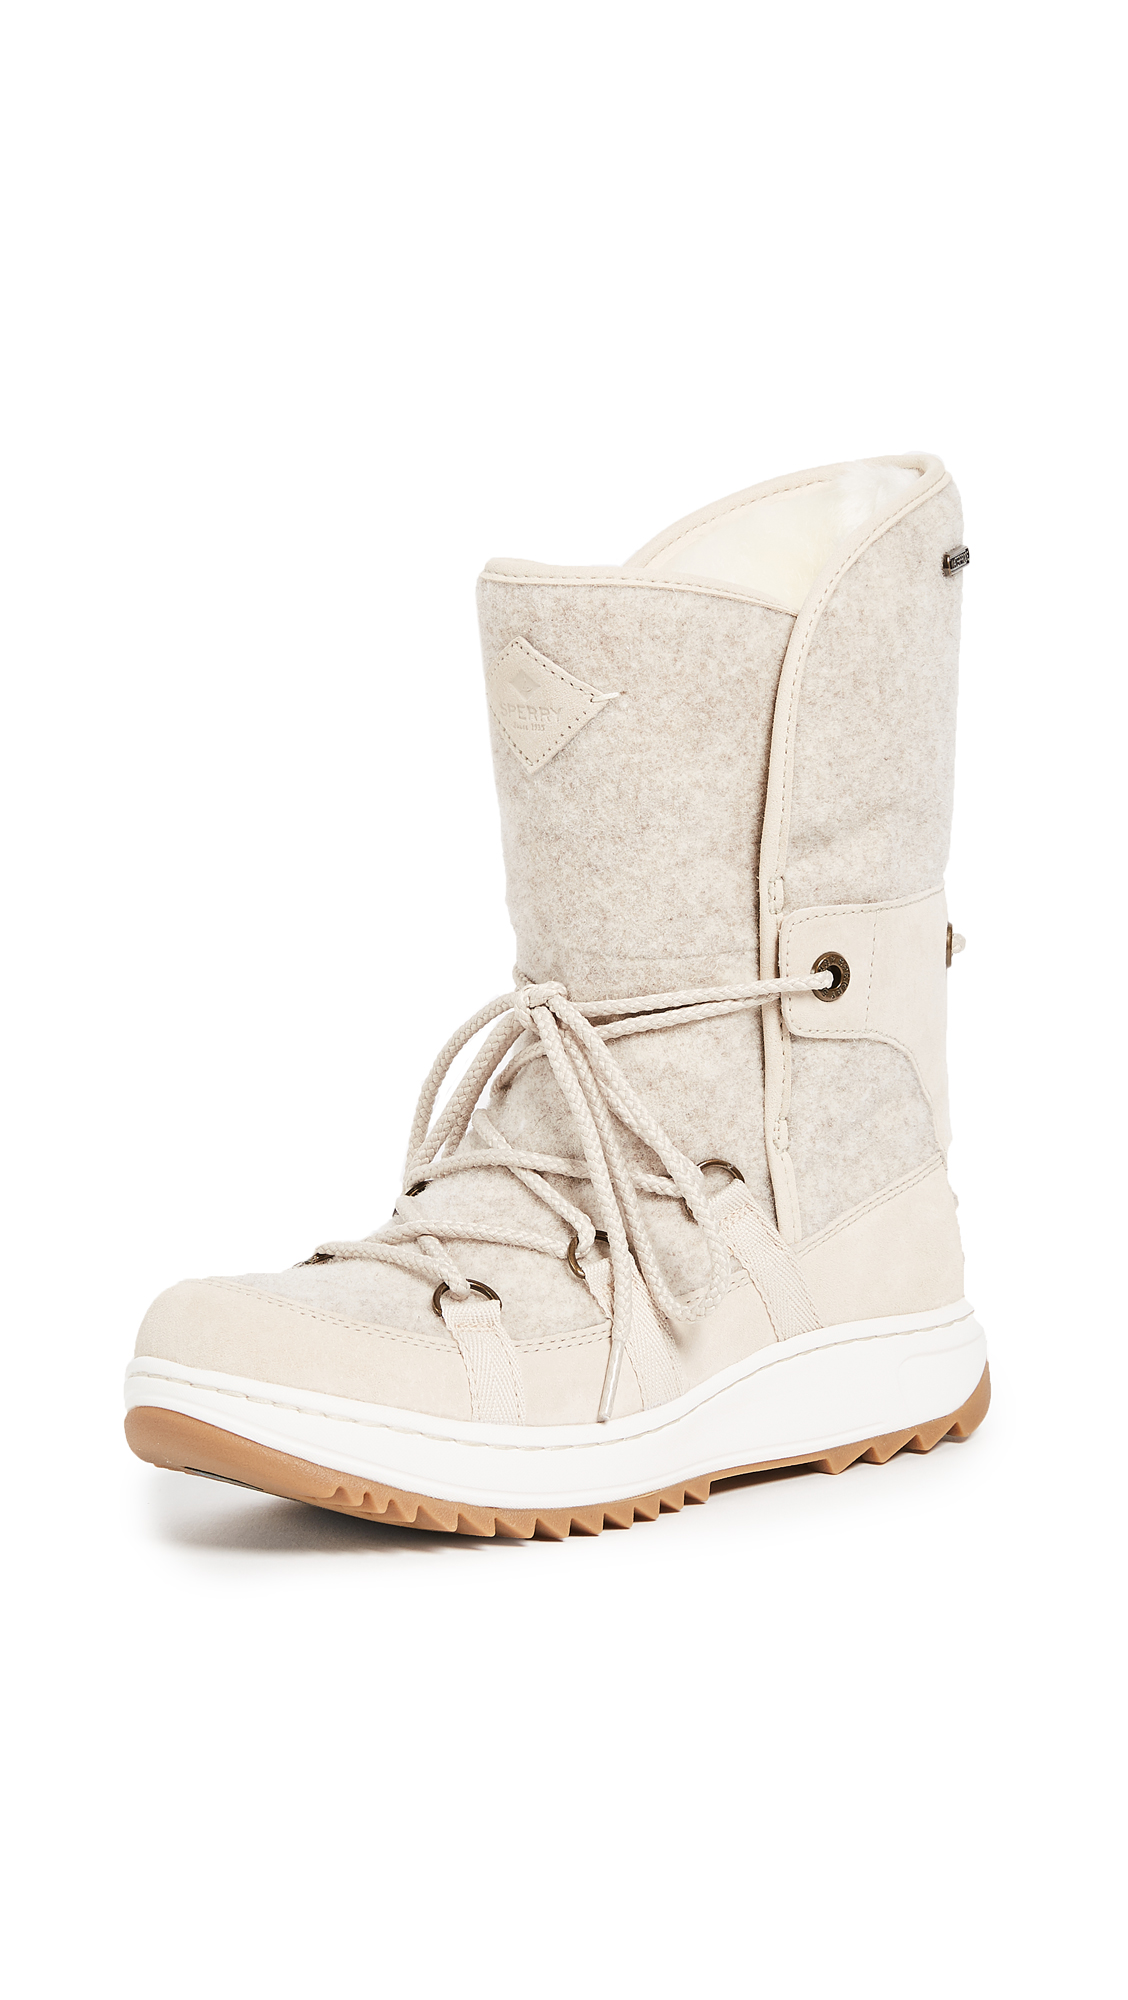 Sperry Powder Ice Cap Boots - Ivory